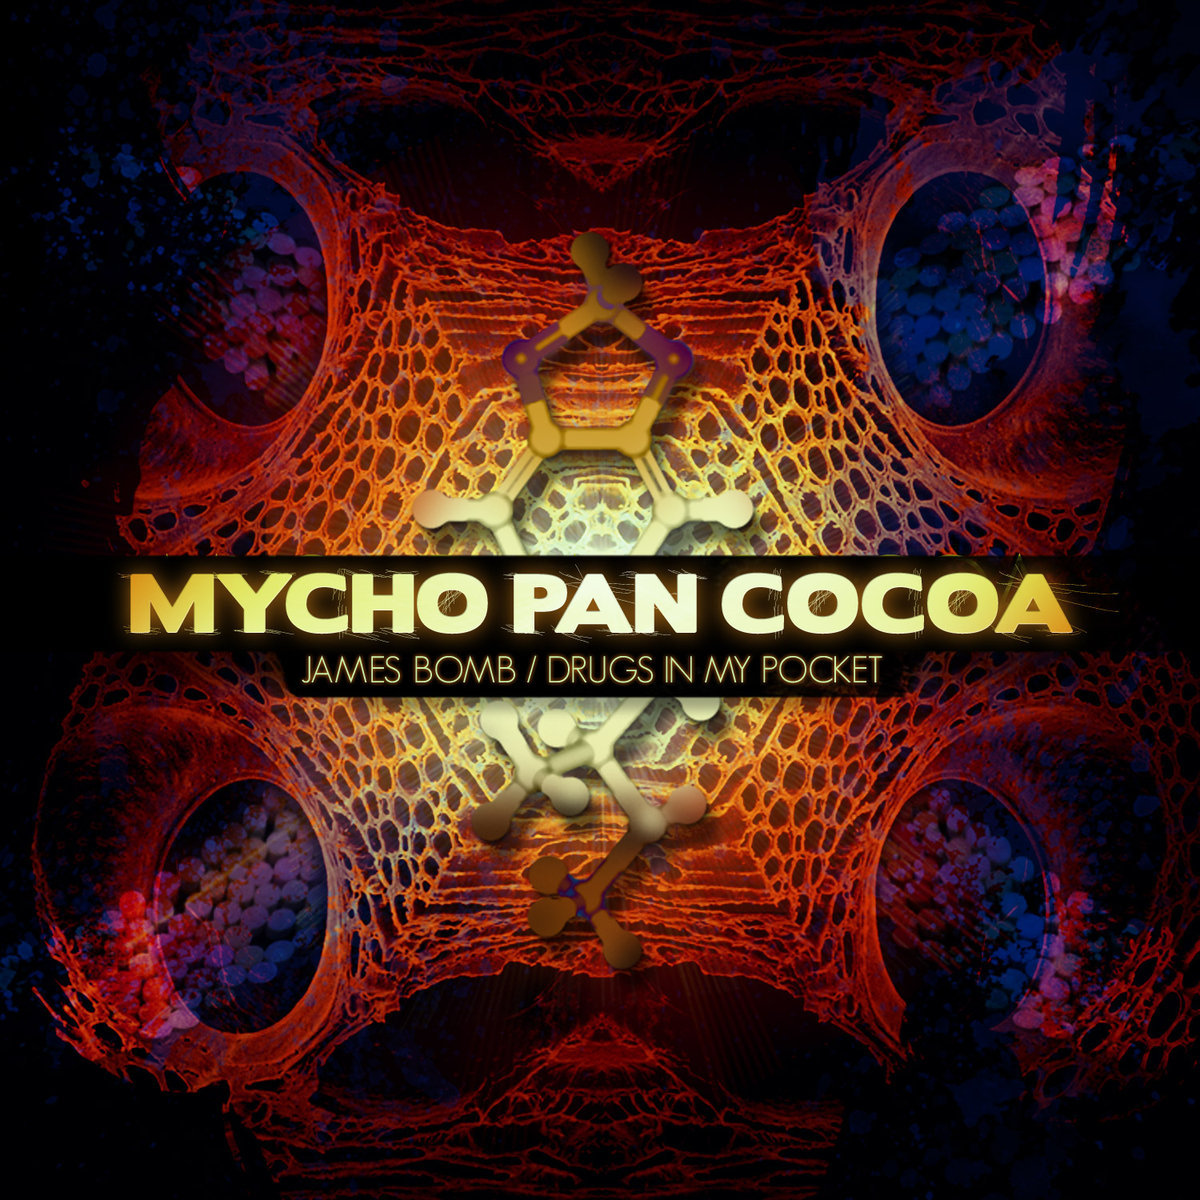 Mycho Pan Cocoa - Drugs in my Pocket @ 'Drugs in my Pocket' album (electronic, dubstep)